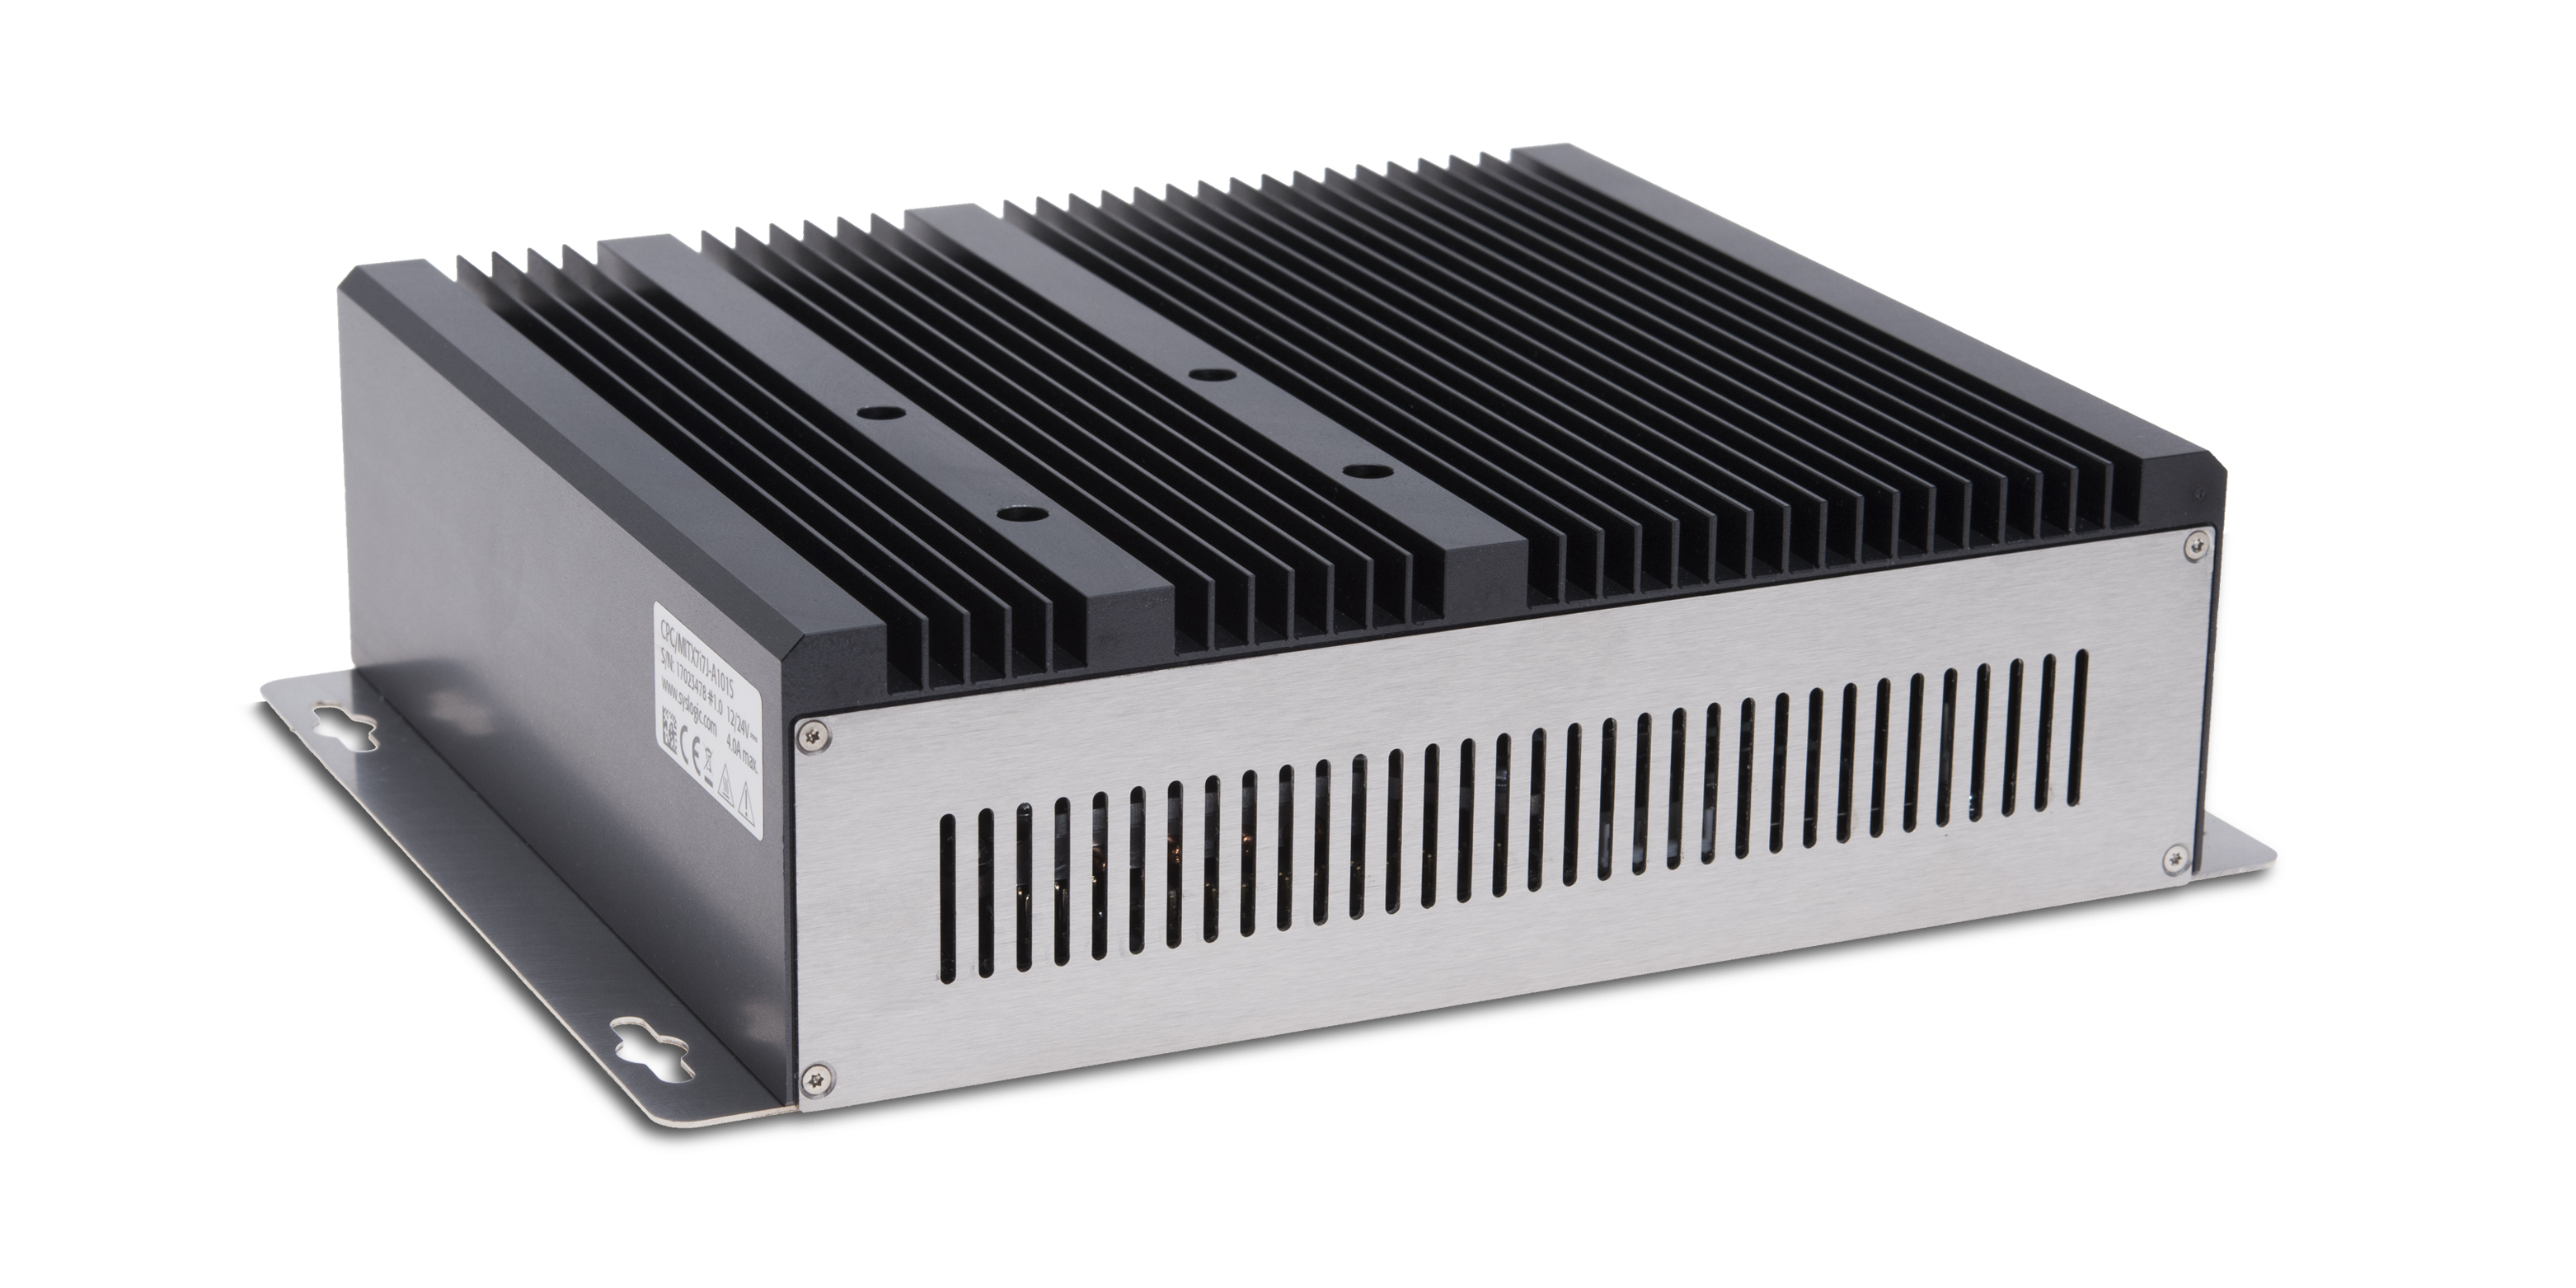 Kaby Lake (7th generation Core-i) Embedded Box PC